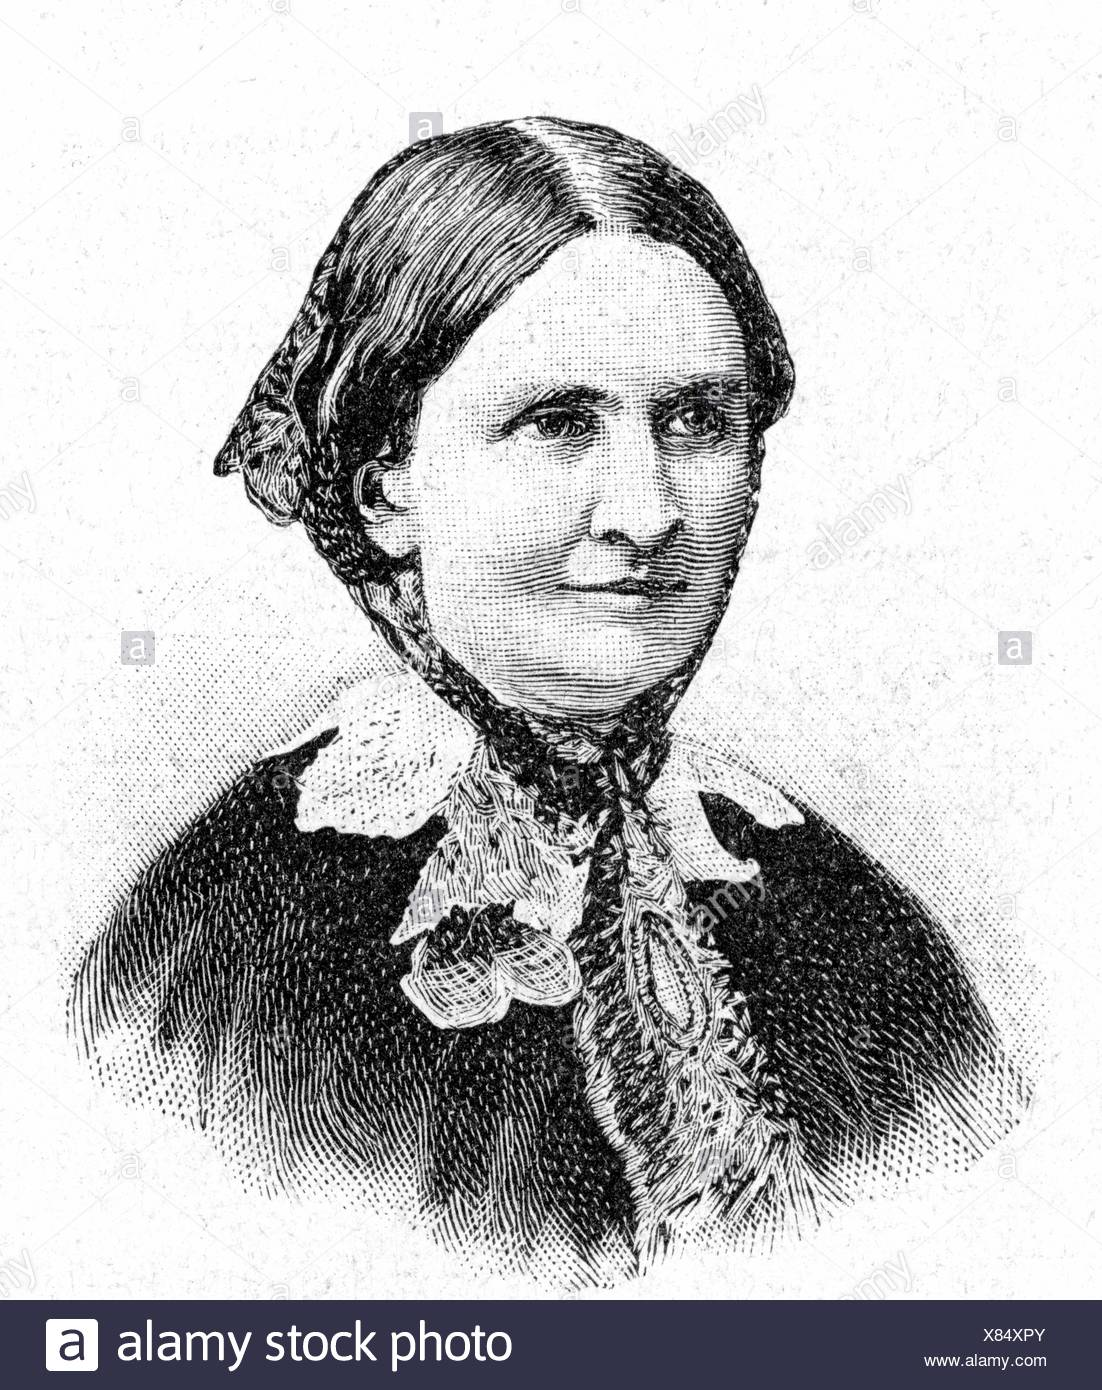 Marie luise black and white stock photos images alamy for Marie luise weber